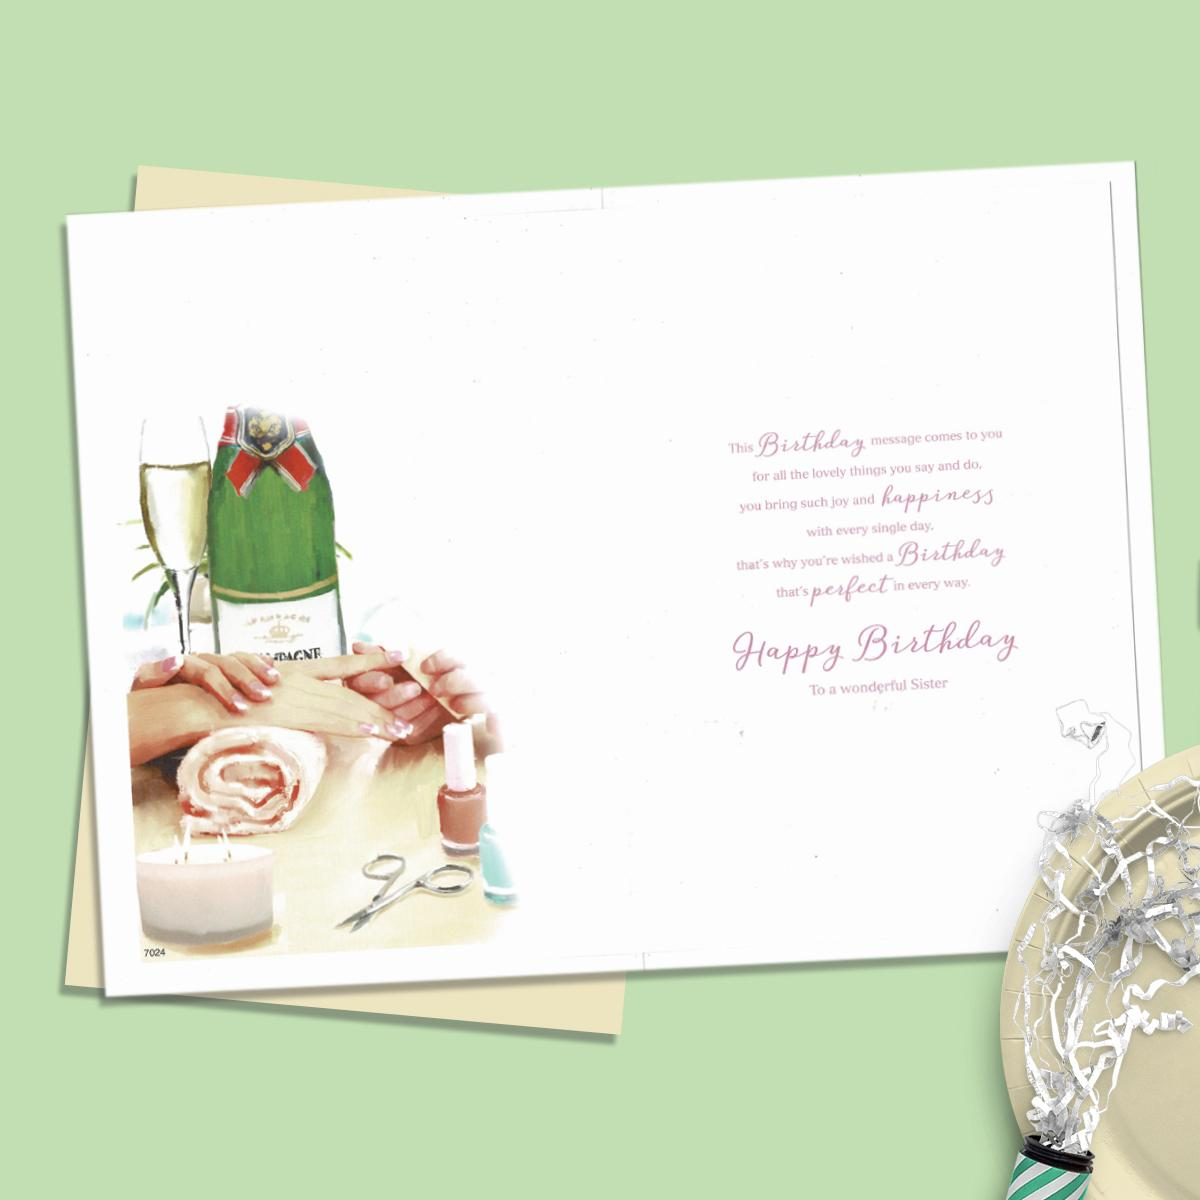 Inside Of Sister Birthday Card Showing Layout And Printed Text